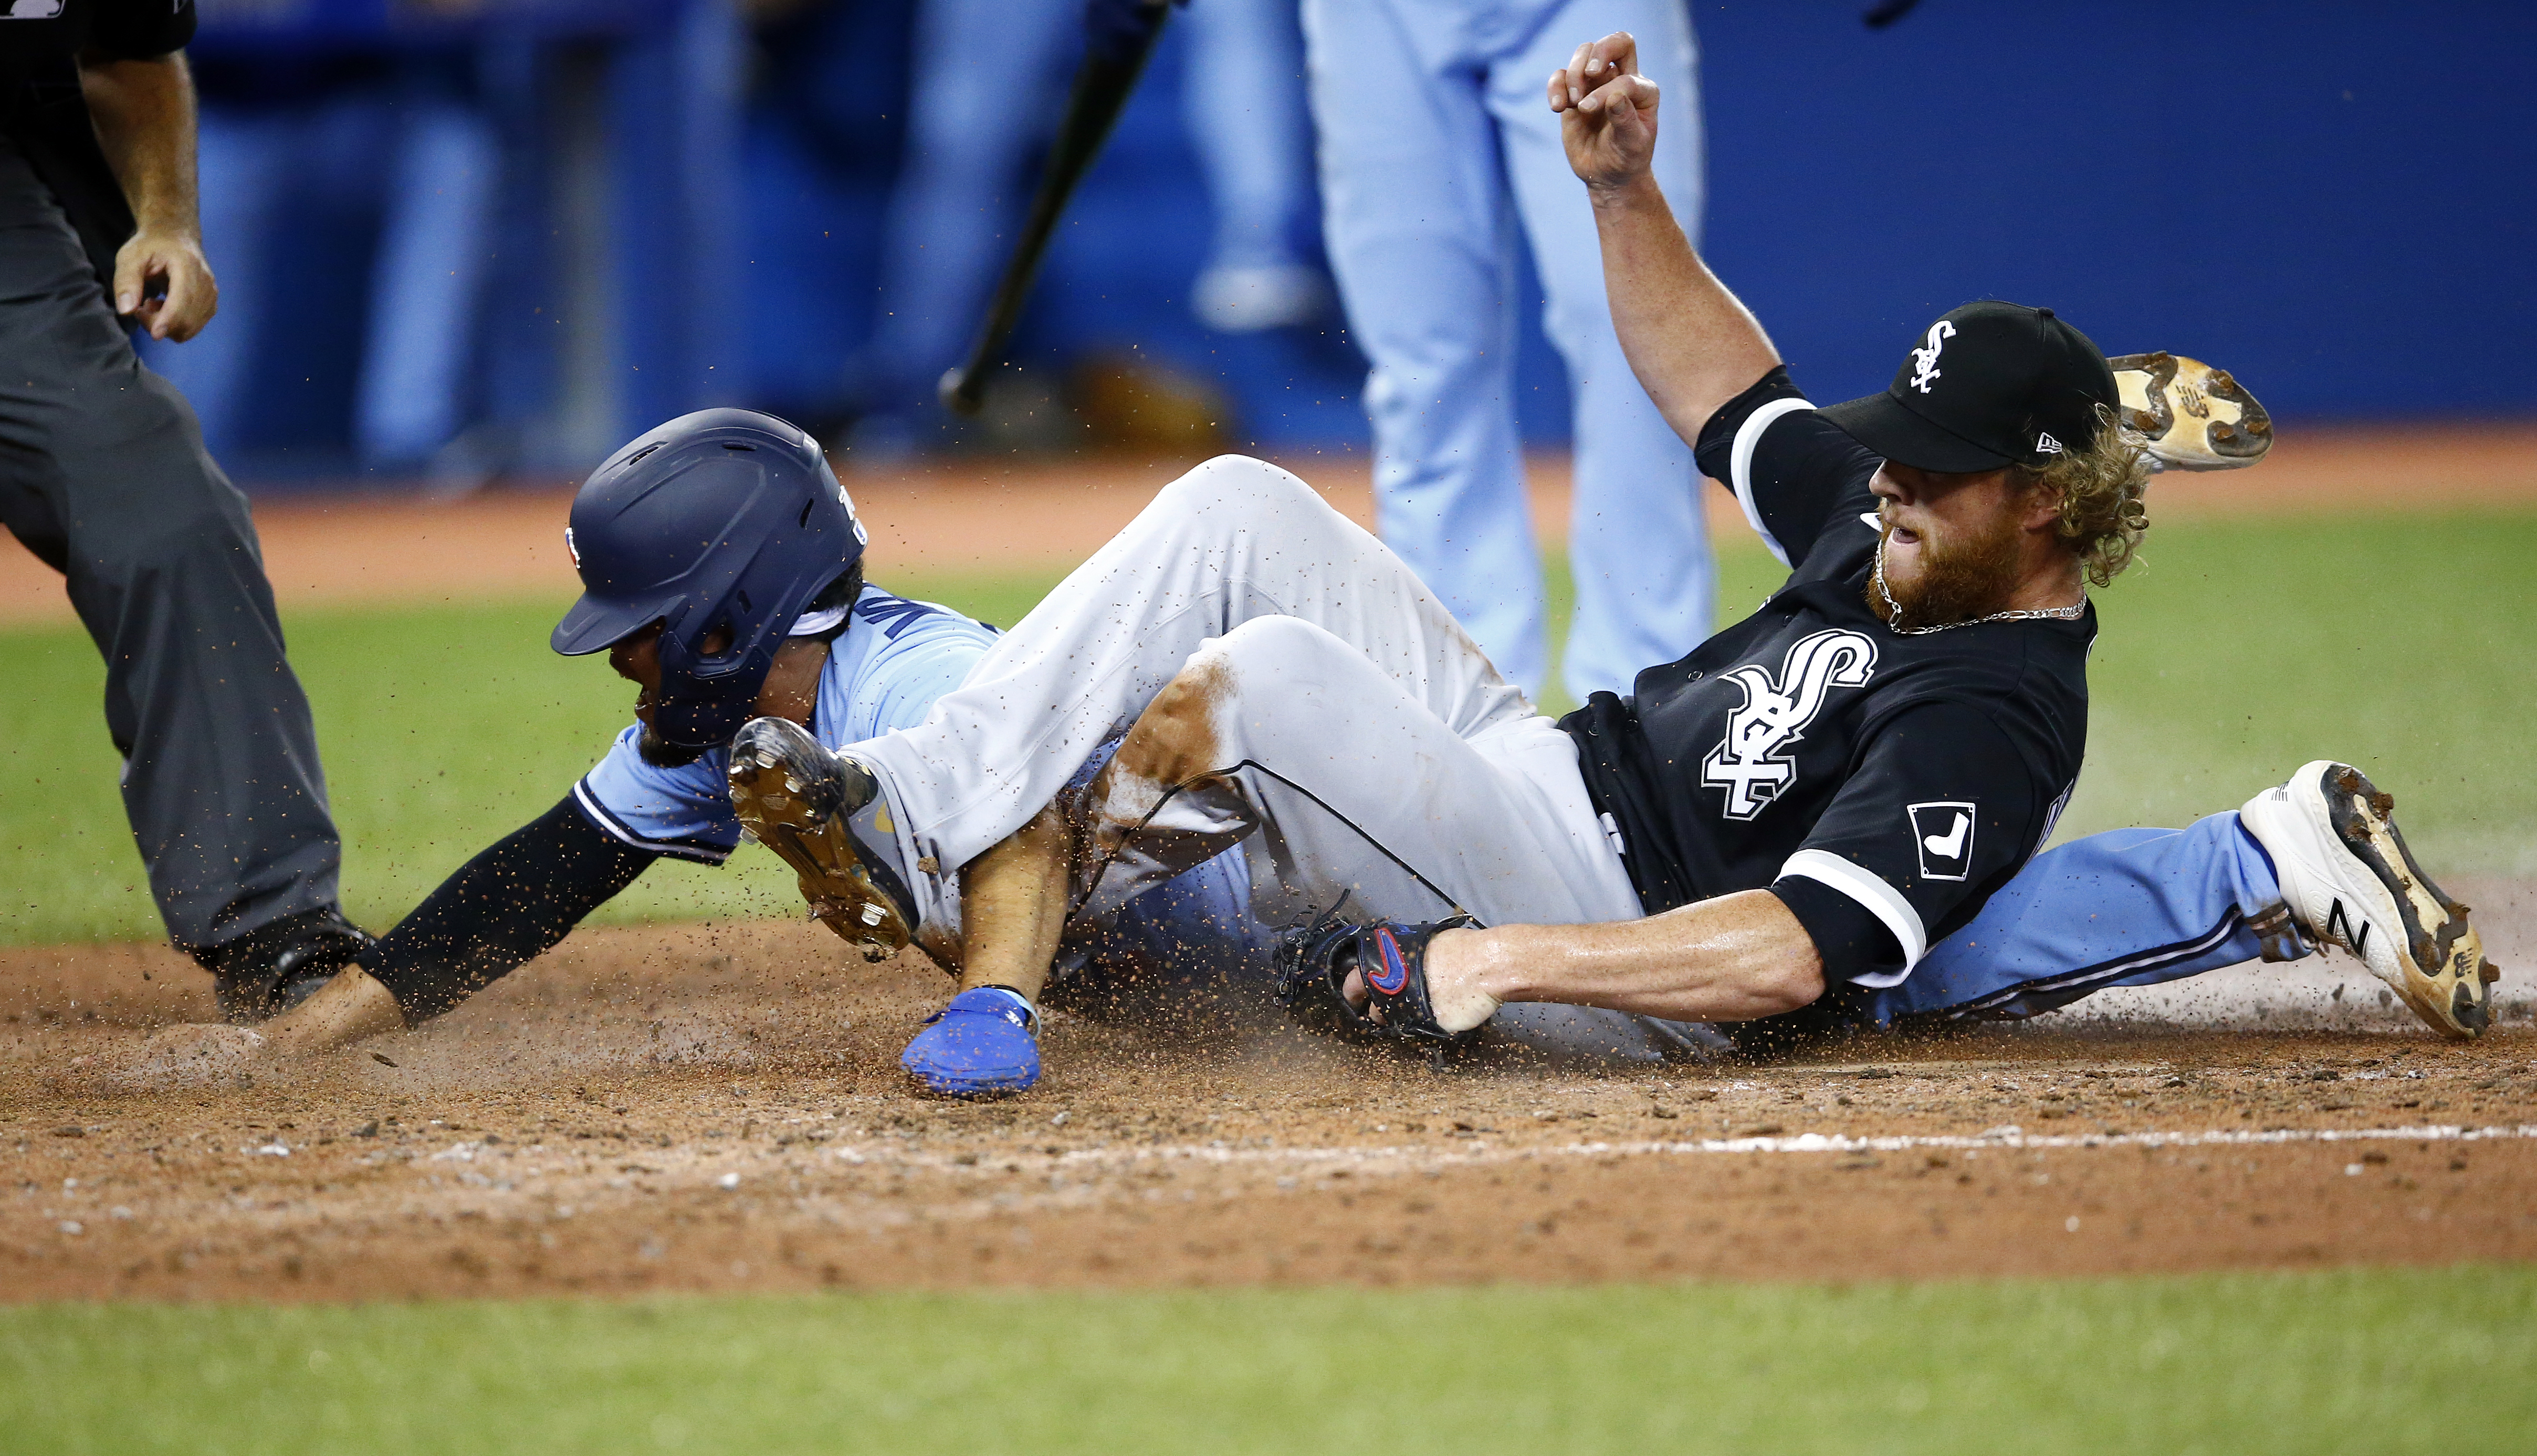 Breyvic Valera scores the go-ahead run on a wild pitch by Craig Kimbrel in the eighth inning Monday in Toronto.